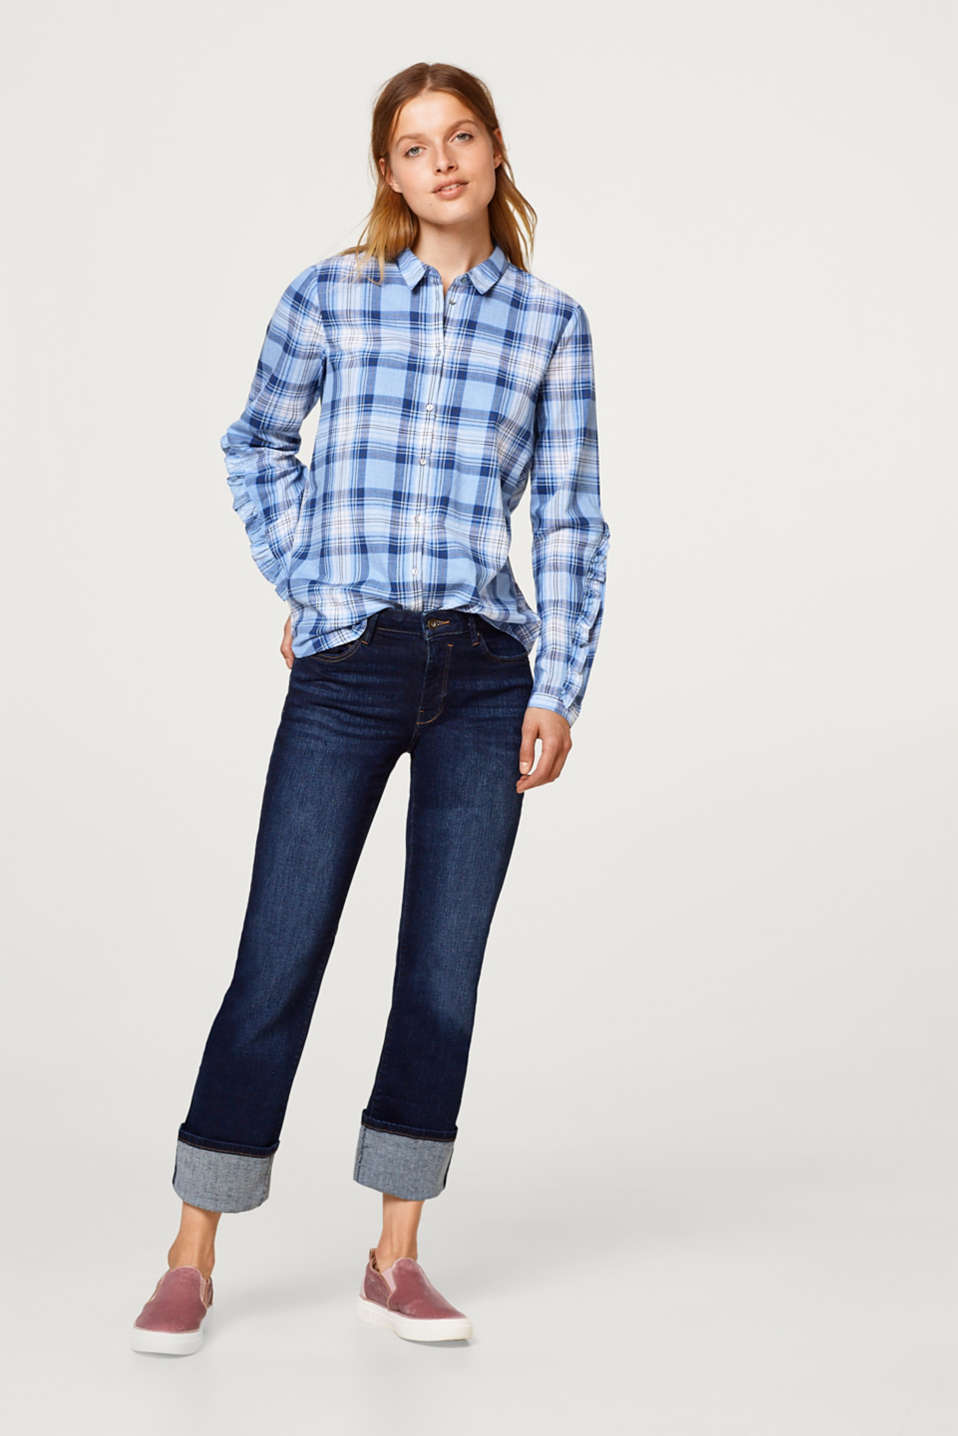 Checked shirt with flounce details, 100% cotton